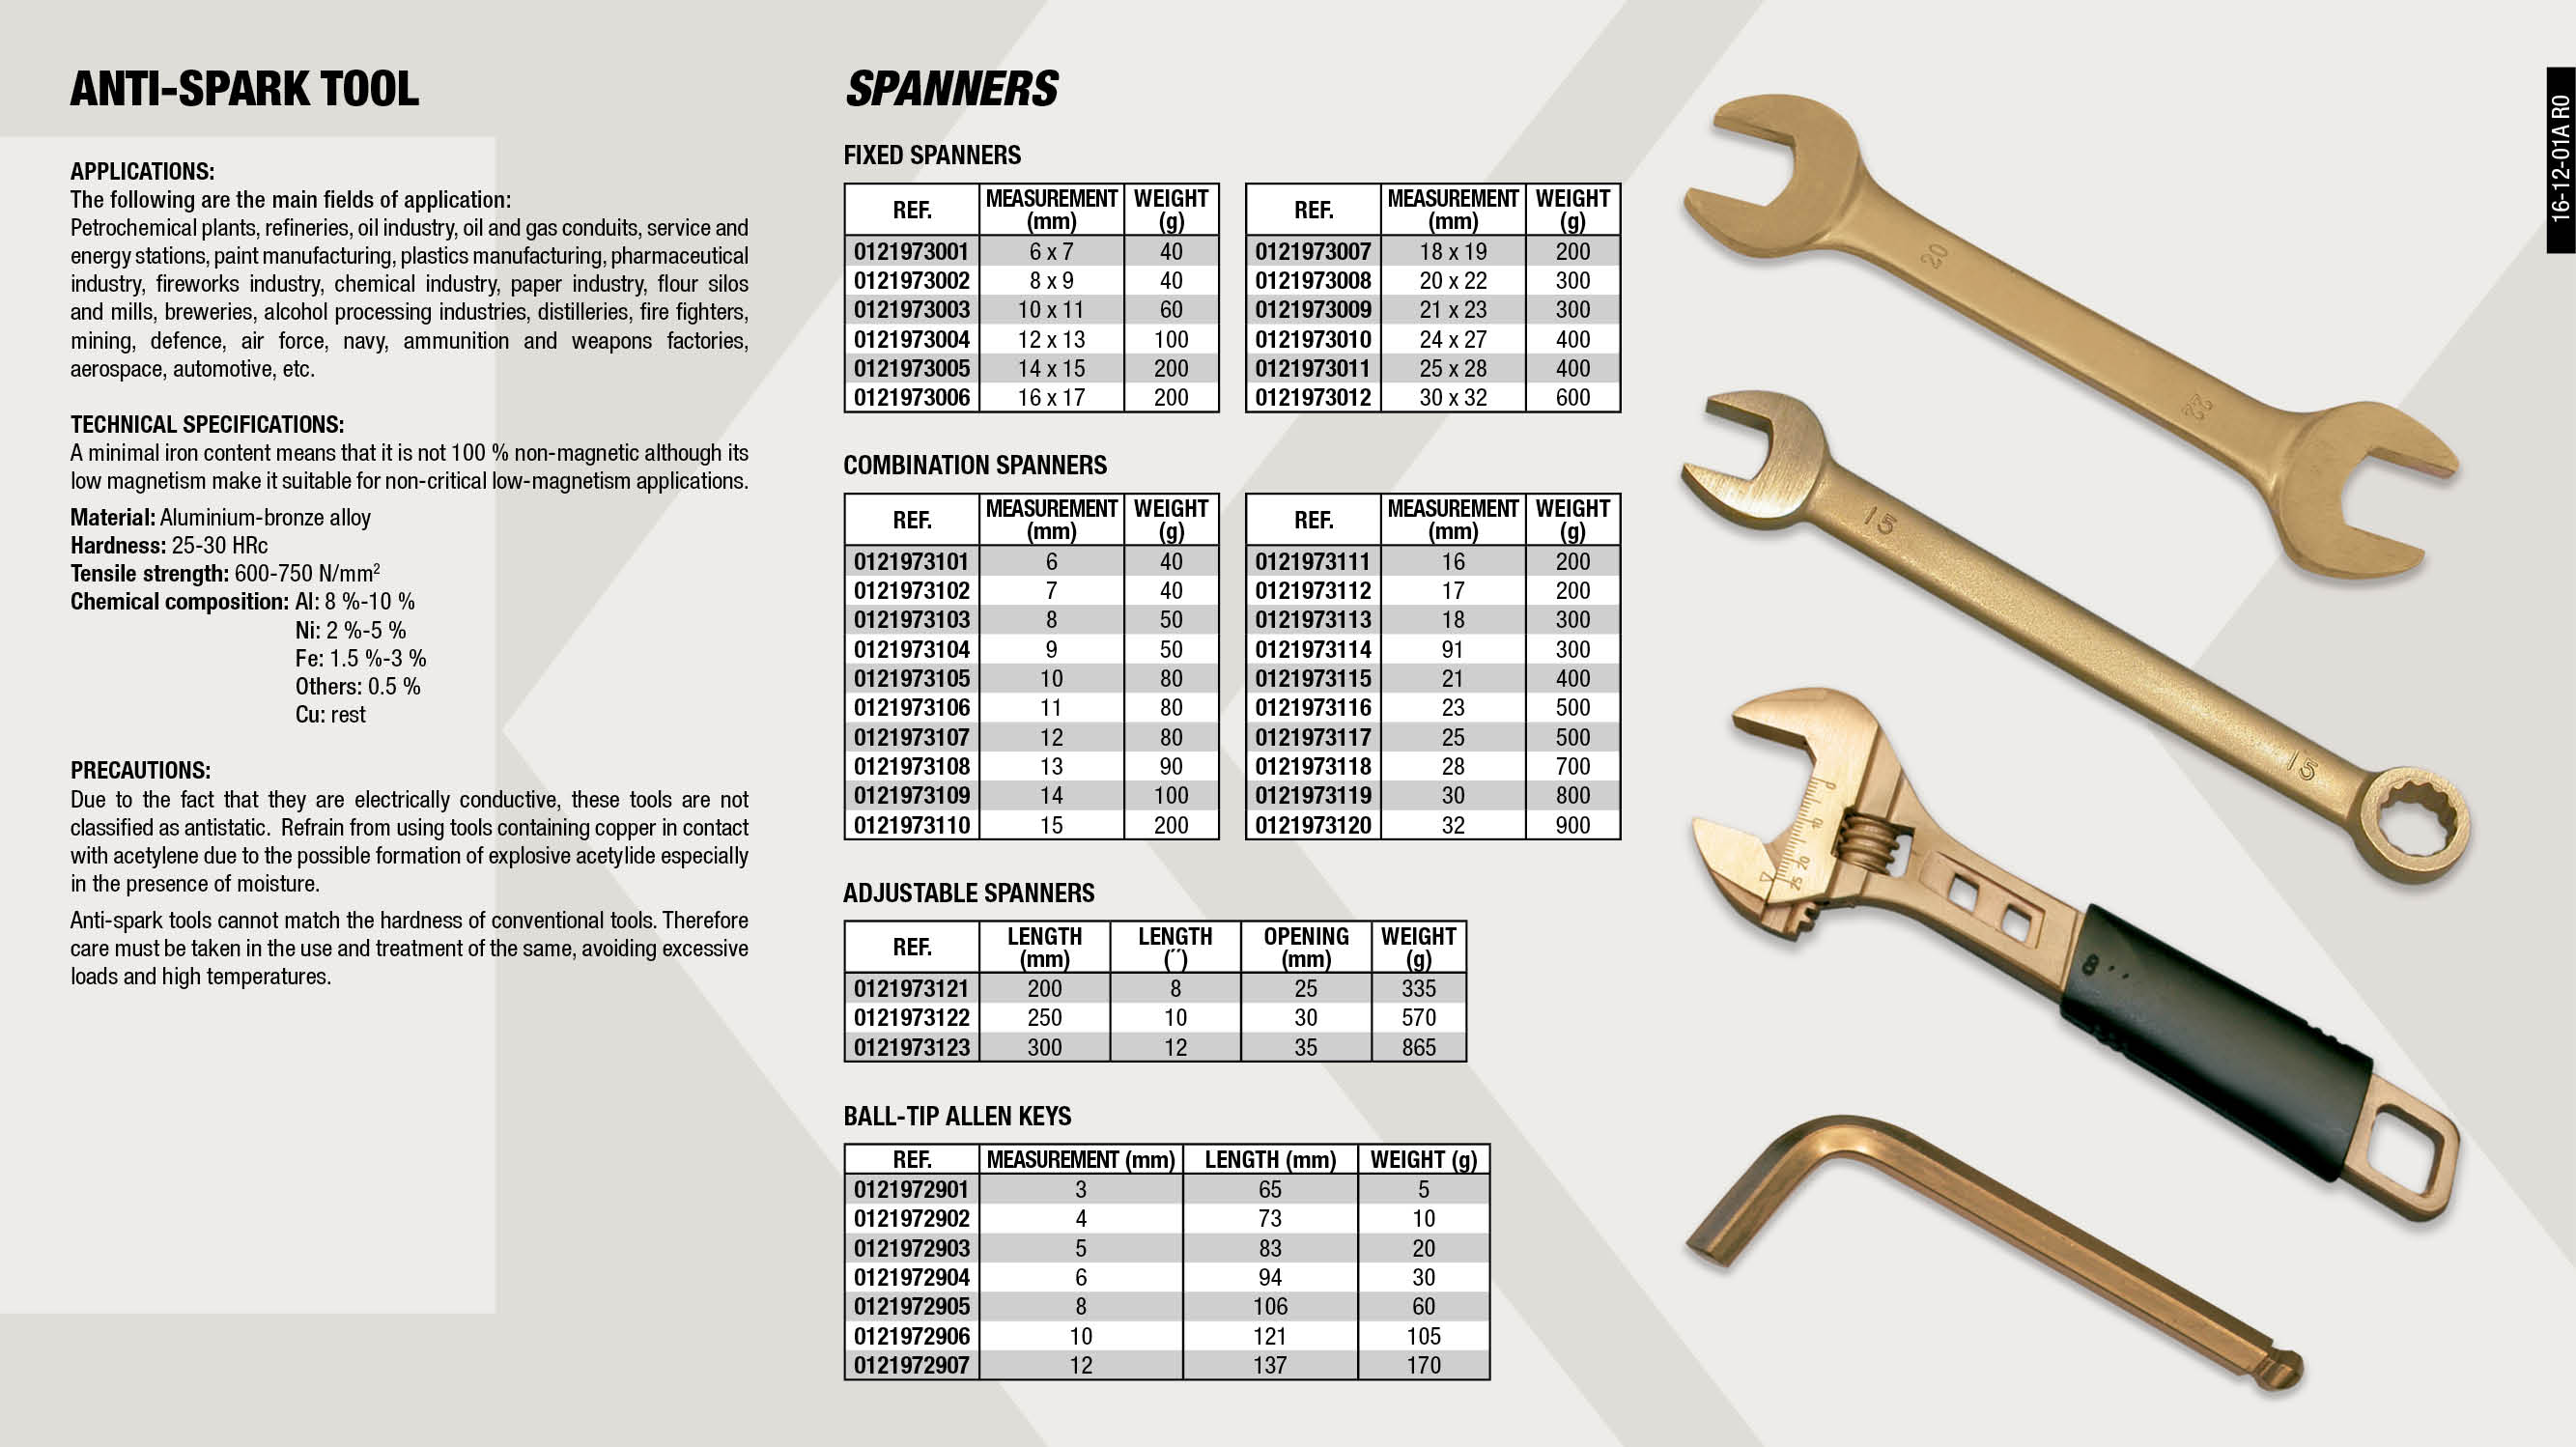 NON-SPARKING COMBINATION WRENCH 16 WÄHLEN                   ,  									NON-SPARKING HEXAGONAL KEY 8MM WÄHLEN                       ,  									NON-SPARKING OPEN-END WRENCH 14X15 WÄHLEN                   ,  									NON-SPARKING COMBINATION WRENCH 23 WÄHLEN                   ,  									NON-SPARKING ADJUSTABLE WRENCH 8' WÄHLEN                    ,  									NON-SPARKING HEXAGONAL KEY 12MM WÄHLEN                      ,  									NON-SPARKING COMBINATION WRENCH 9 WÄHLEN                    ,  									NON-SPARKING COMBINATION WRENCH 11 WÄHLEN                   ,  									NON-SPARKING HEXAGONAL KEY 6MM WÄHLEN                       ,  									NON-SPARKING HEXAGONAL KEY 10MM WÄHLEN                      ,  									NON-SPARKING OPEN-END WRENCH 10X11 WÄHLEN                   ,  									NON-SPARKING OPEN-END WRENCH 18X19 WÄHLEN                   ,  									NON-SPARKING COMBINATION WRENCH 18 WÄHLEN                   ,  									NON-SPARKING COMBINATION WRENCH 21 WÄHLEN                   ,  									NON-SPARKING HEXAGONAL KEY 3MM WÄHLEN                       ,  									NON-SPARKING HEXAGONAL KEY 4MM WÄHLEN                       ,  									NON-SPARKING COMBINATION WRENCH 8 WÄHLEN                    ,  									NON-SPARKING OPEN-END WRENCH 8X9 WÄHLEN                     ,  									NON-SPARKING OPEN-END WRENCH 20X22 WÄHLEN                   ,  									NON-SPARKING OPEN-END WRENCH 24X27 WÄHLEN                   ,  									NON-SPARKING OPEN-END WRENCH 25X28 WÄHLEN                   ,  									NON-SPARKING COMBINATION WRENCH 13 WÄHLEN                   ,  									NON-SPARKING COMBINATION WRENCH 12 WÄHLEN                   ,  									NON-SPARKING COMBINATION WRENCH 17 WÄHLEN                   ,  									NON-SPARKING OPEN-END WRENCH 6X7 WÄHLEN                     ,  									NON-SPARKING COMBINATION WRENCH 28 WÄHLEN                   ,  									NON-SPARKING COMBINATION WRENCH 10 WÄHLEN                   ,  									NON-SPARKING COMBINATION WRENCH 14 WÄHLEN                   ,  									NON-SPARKING OPEN-END WRENCH 16X17 WÄHLEN                   ,  									NON-SPARKING COMBINATION WRENCH 6 WÄHLEN                    ,  									NON-SPARKING COMBINATION WRENCH 7 WÄHLEN                    ,  									NON-SPARKING COMBINATION WRENCH 30 WÄHLEN                   ,  									NON-SPARKING OPEN-END WRENCH 30X32 WÄHLEN                   ,  									NON-SPARKING COMBINATION WRENCH 25 WÄHLEN                   ,  									NON-SPARKING ADJUSTABLE WRENCH 10' WÄHLEN                   ,  									NON-SPARKING COMBINATION WRENCH 19 WÄHLEN                   ,  									NON-SPARKING COMBINATION WRENCH 32 WÄHLEN                   ,  									NON-SPARKING ADJUSTABLE WRENCH 12' WÄHLEN                   ,  									NON-SPARKING HEXAGONAL KEY 5MM WÄHLEN                       ,  									NON-SPARKING OPEN-END WRENCH 12X13 WÄHLEN                   ,  									NON-SPARKING OPEN-END WRENCH 21X23 WÄHLEN                   ,  									NON-SPARKING COMBINATION WRENCH 15 WÄHLEN                   ,